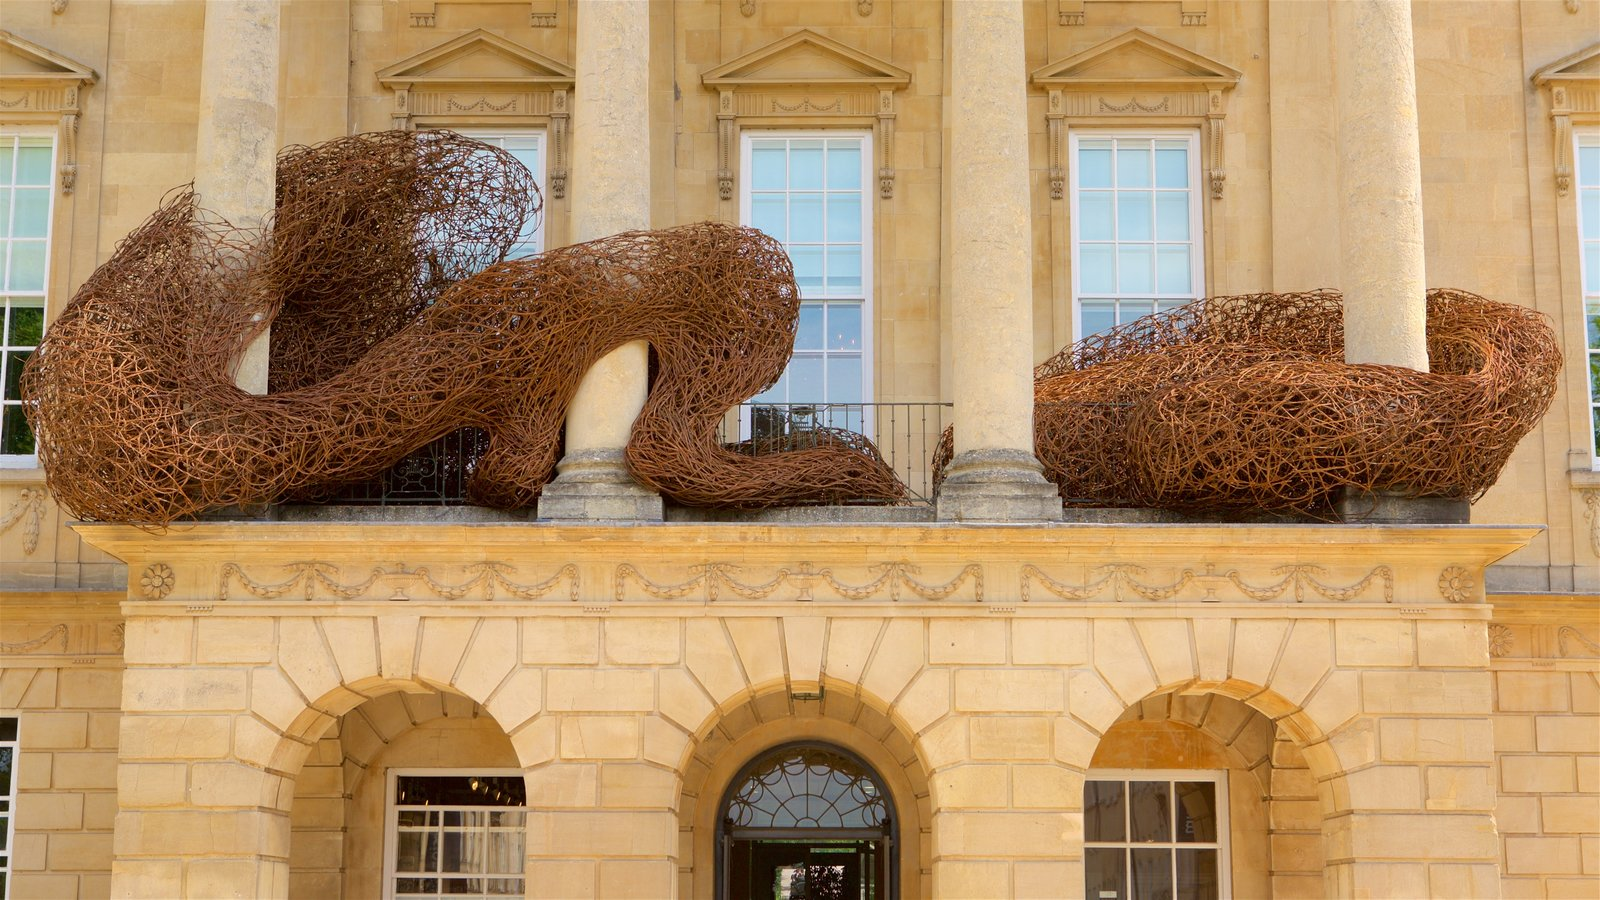 The Holburne Museum featuring heritage architecture